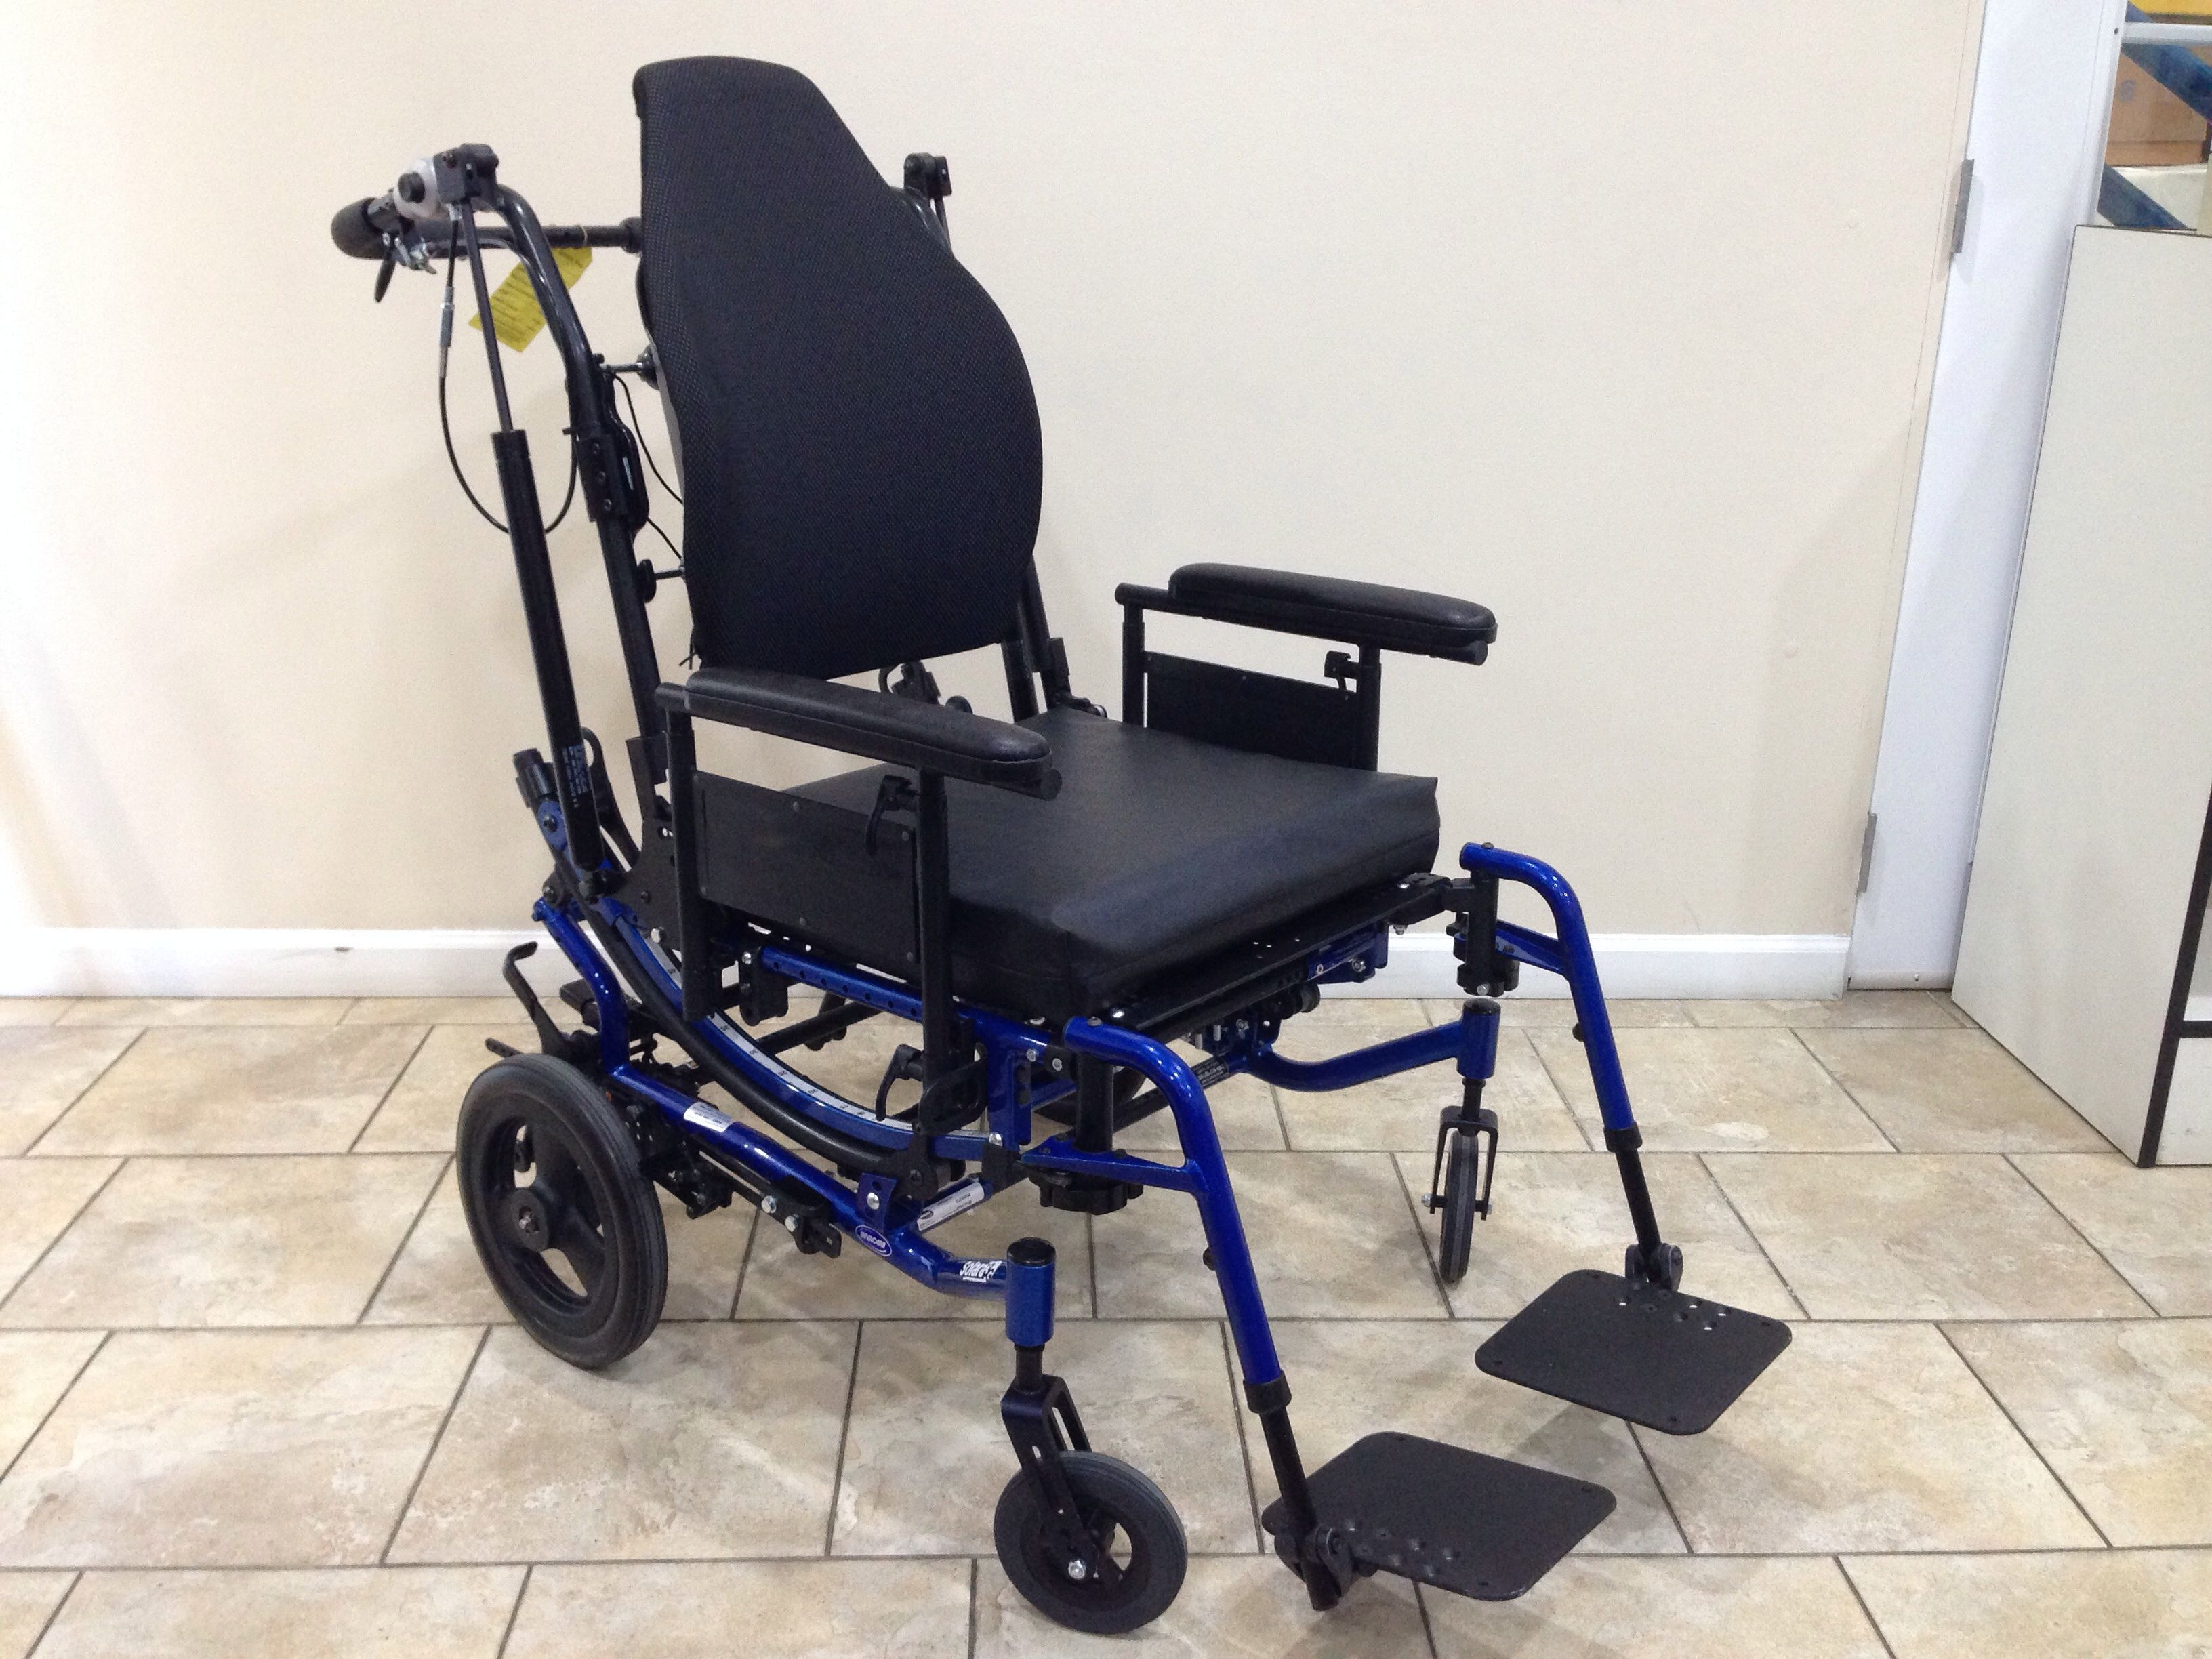 invacare clinical recliner geri chair wedding folding covers for sale solara3g solara 3g tilt in space and reclining